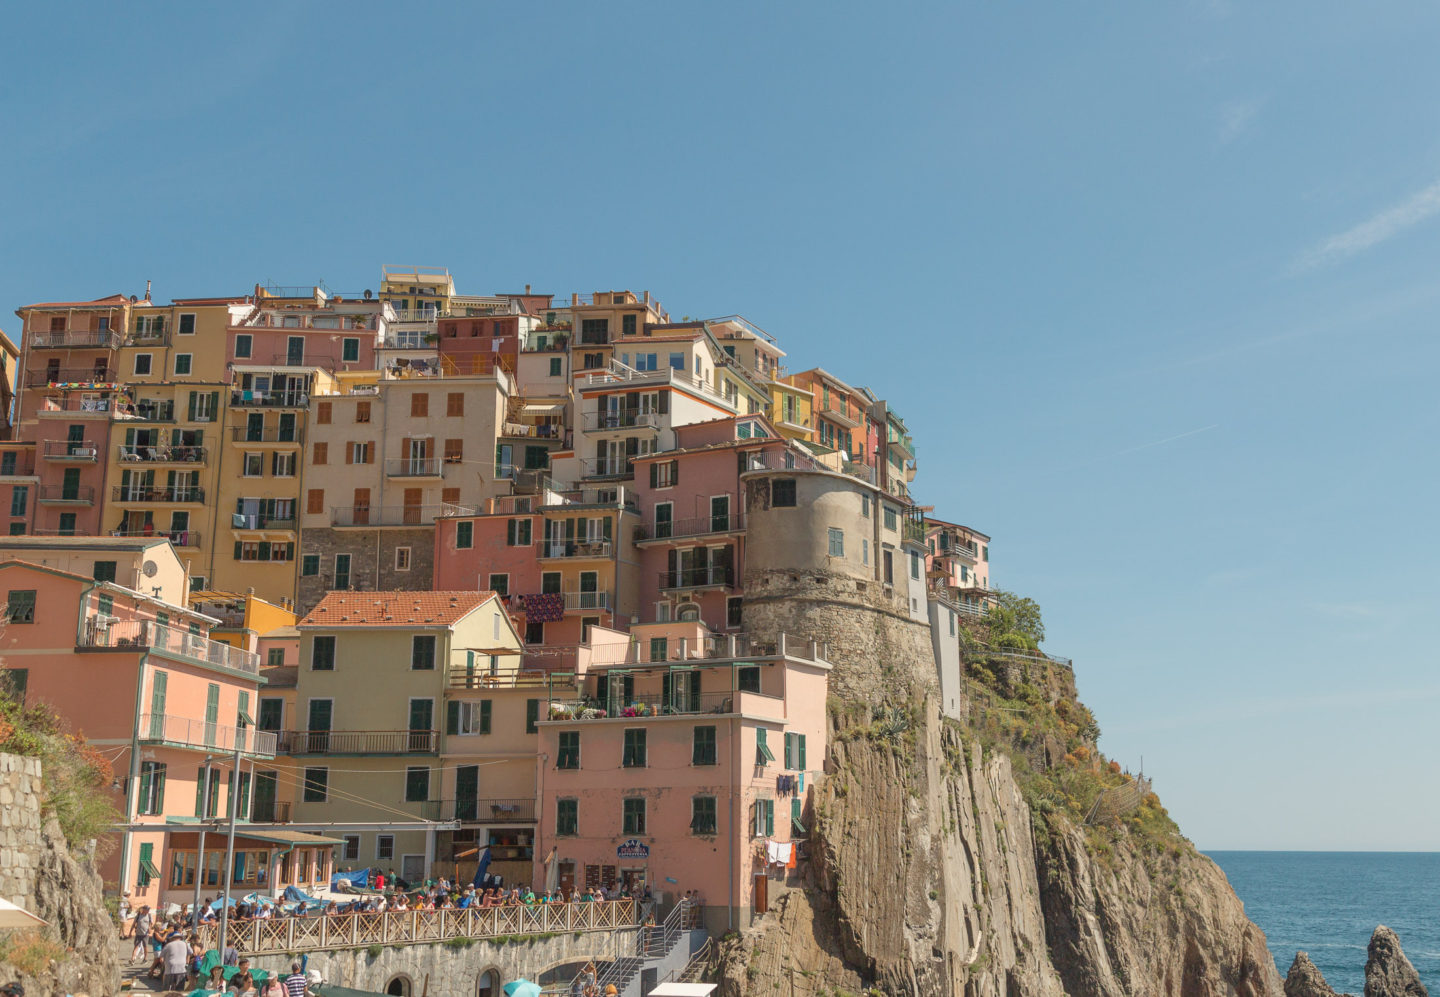 cliffside view of Manarola -- colorful buildings